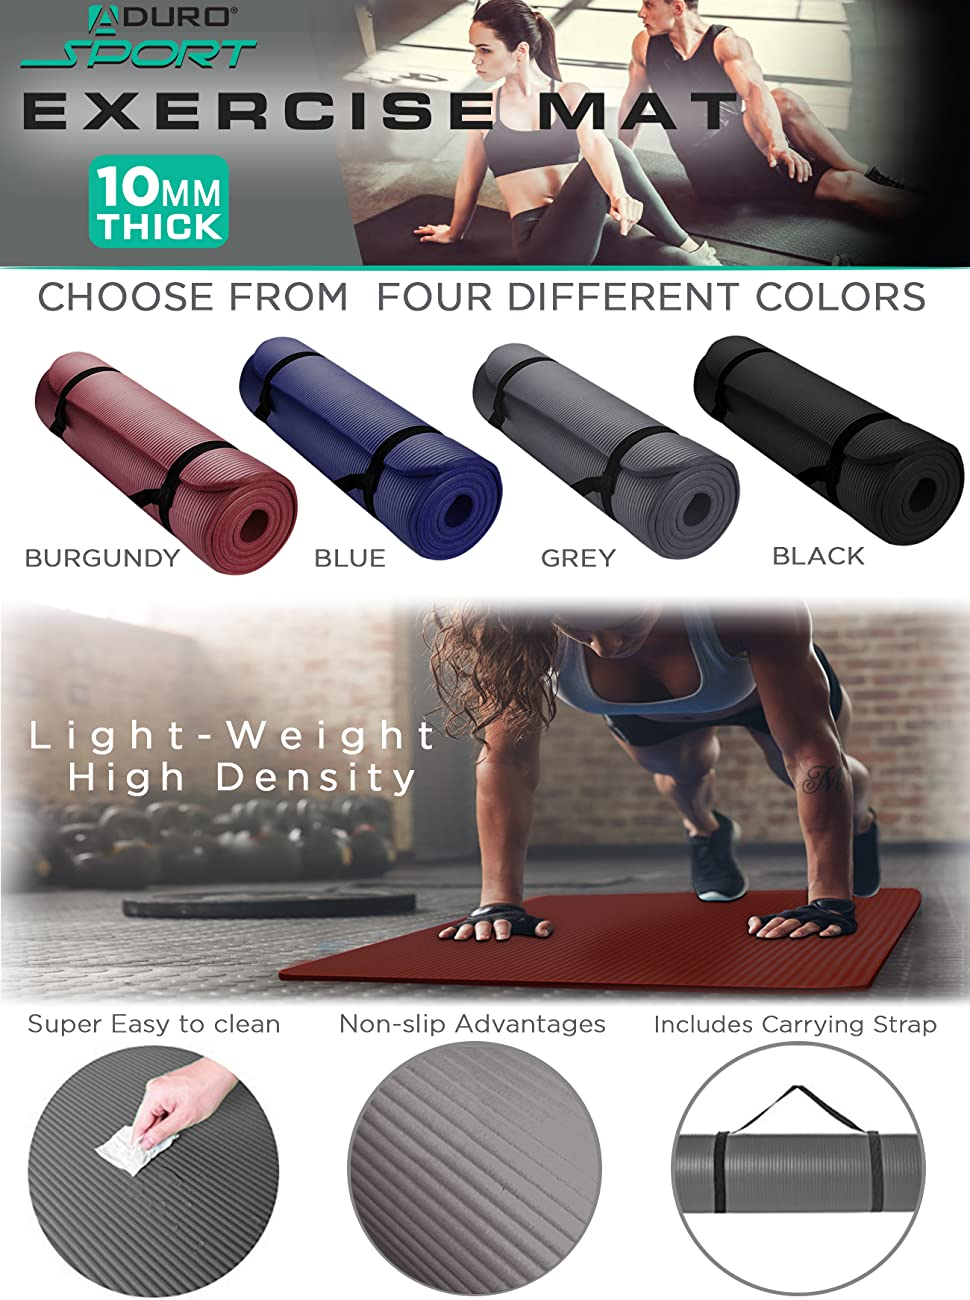 Aduro Sport Yoga Workout Mat, 0.39-inch Extra Thick Yoga Foam Mat for Home Gym with Exercise Mat Strap